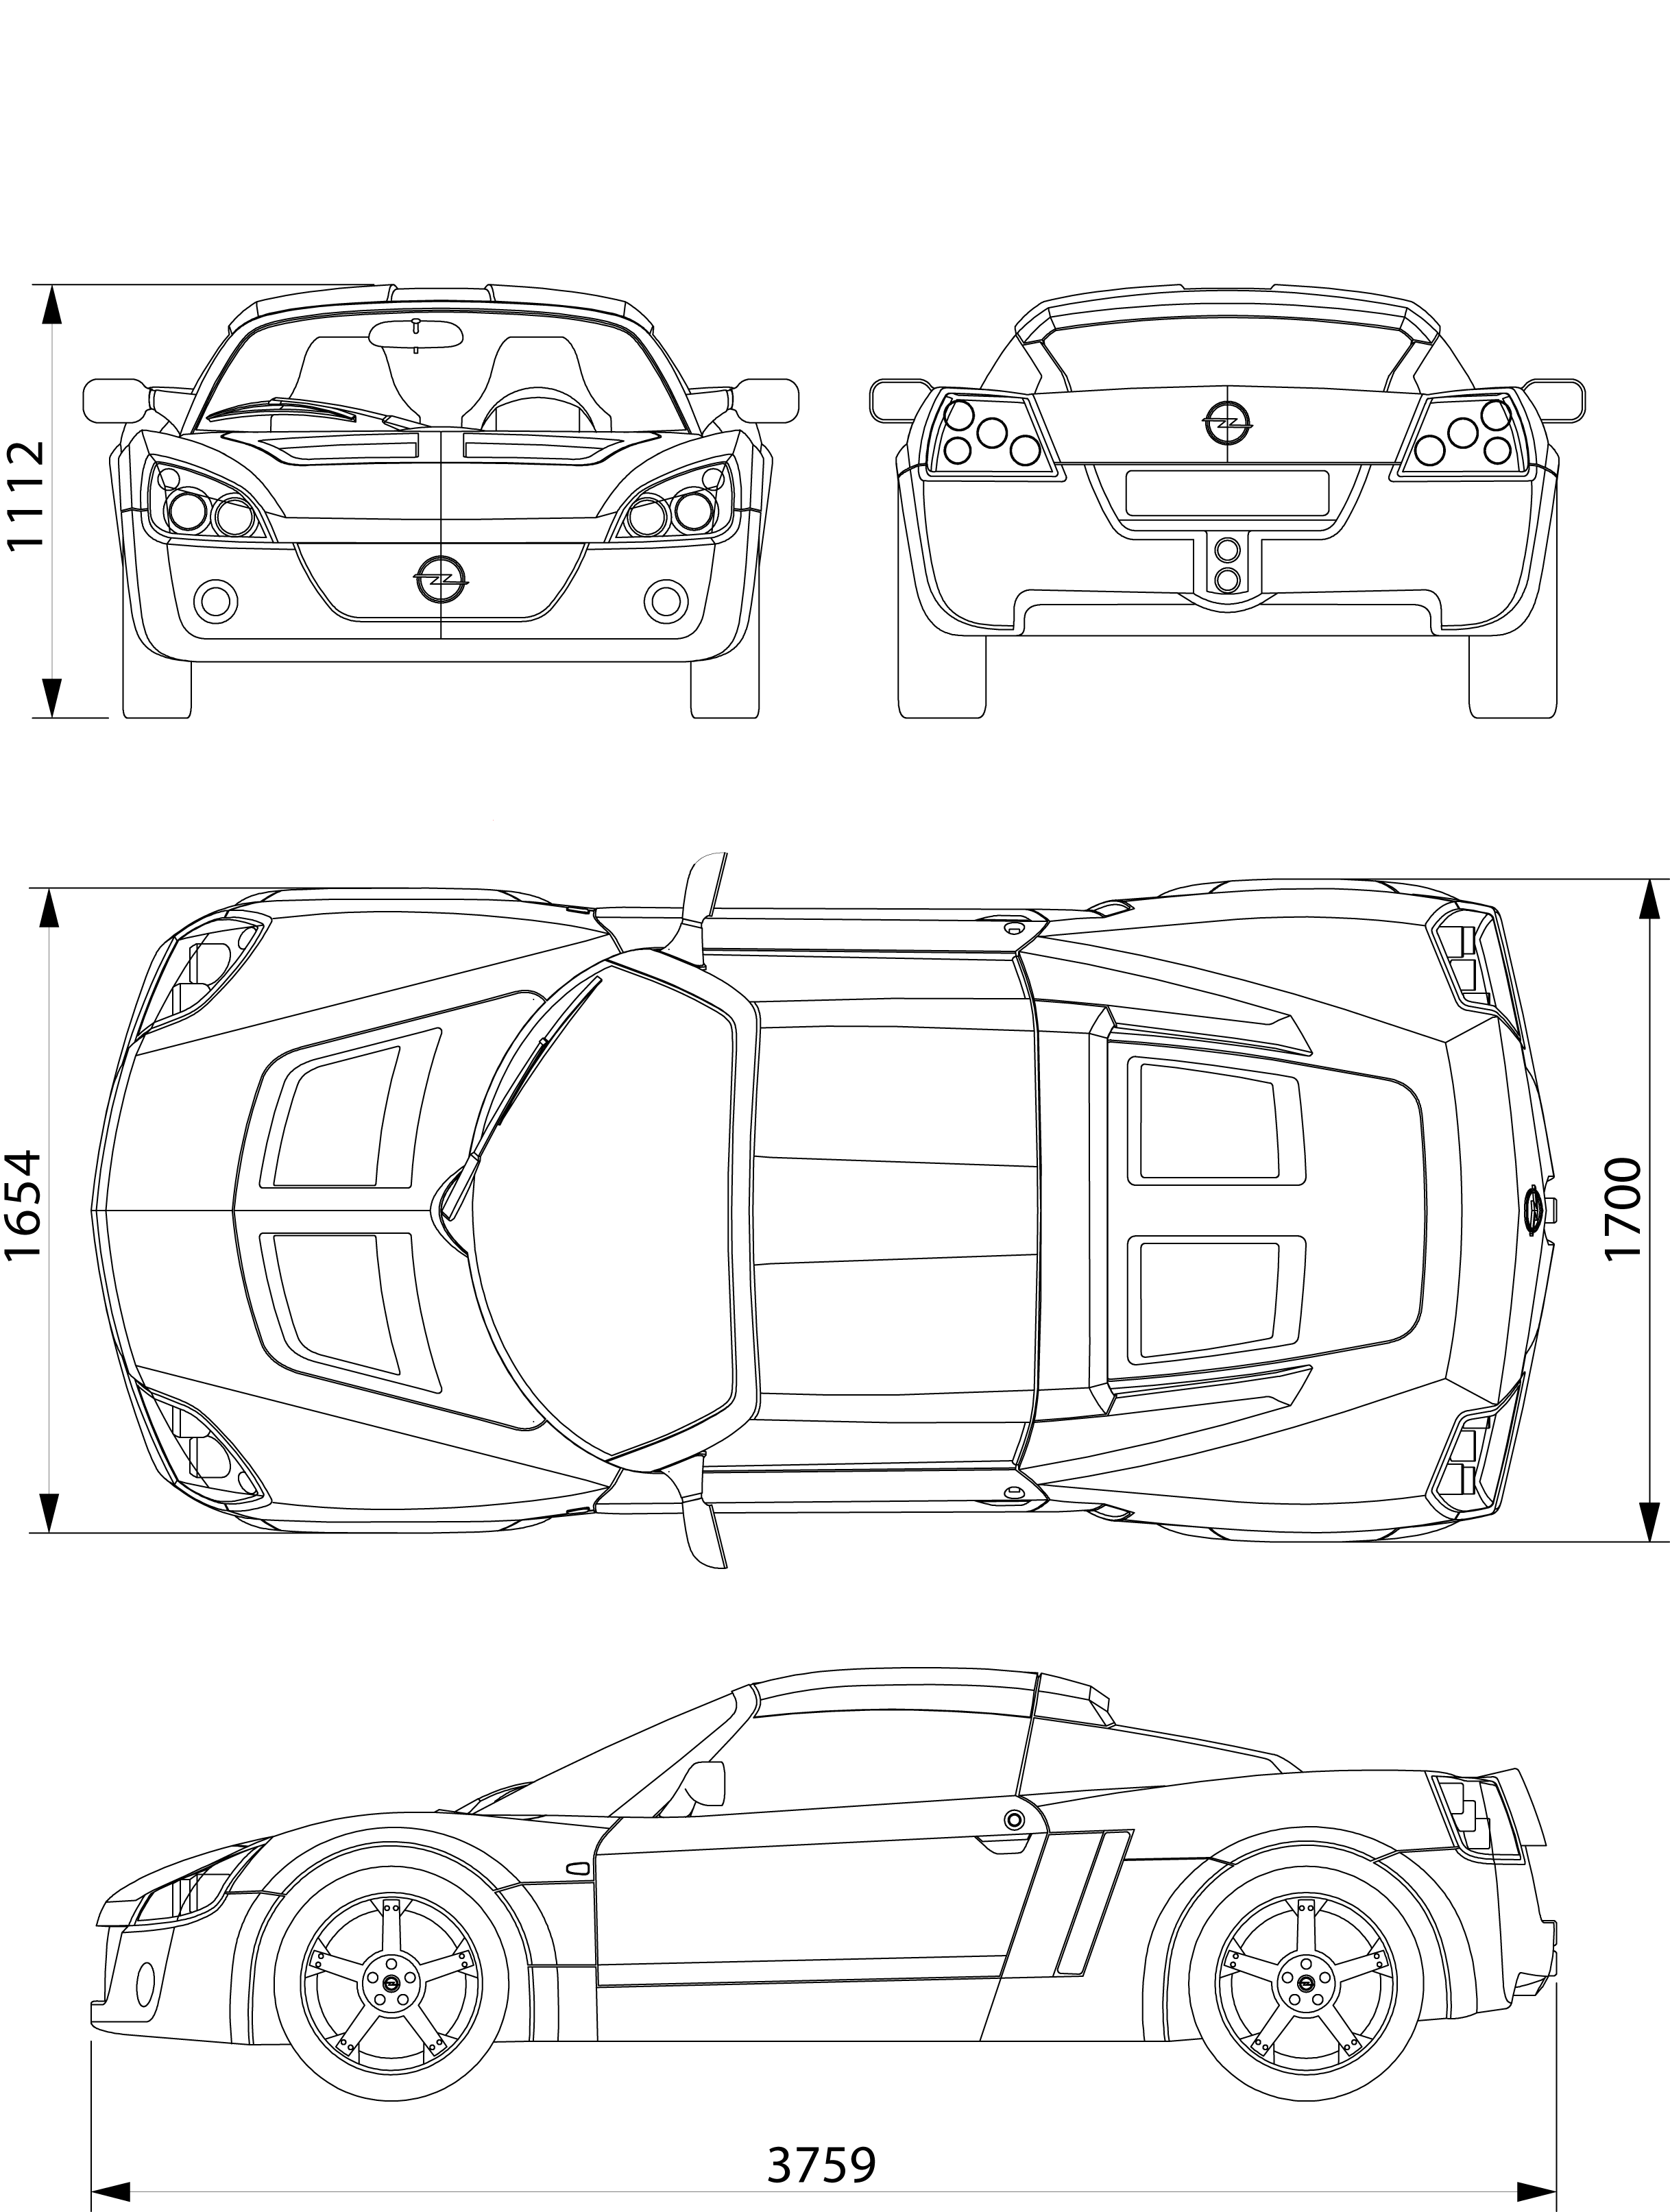 Opel Speedster blueprint | Nice Rides | Pinterest | Cars, Vehicle ...